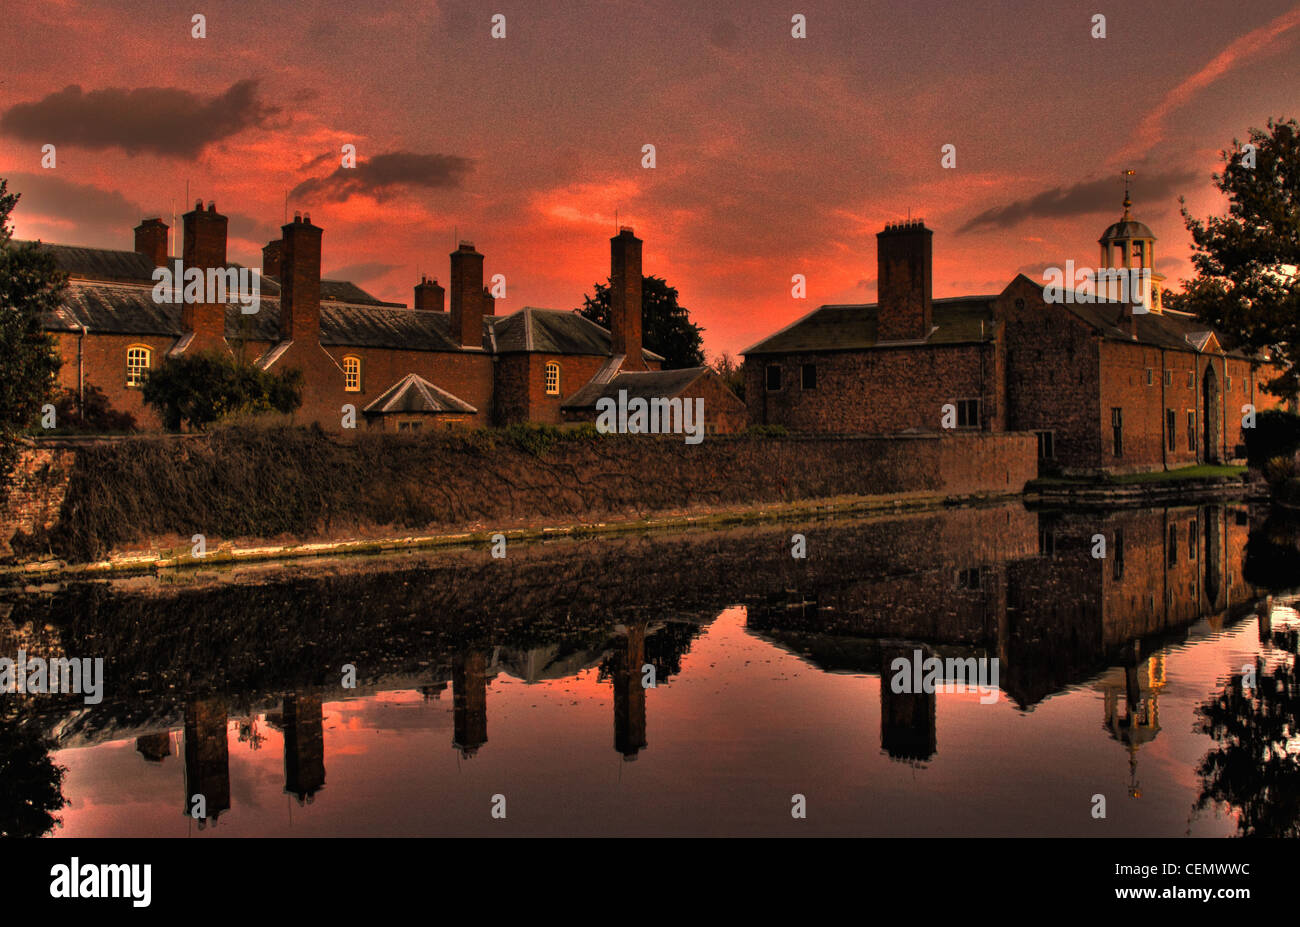 Dunham,Massey,NT,at,dusk,with,a,red,sunset,sky,This,is,National,Trust,near,Altrincham,England,UK.,Its,a,stately,home,and,garden,orange,night,sky,reflections,reflection,gotonysmith,Dunhamtown,town,Stamfords,North,west,NW,gotonysmith,Buy Pictures of,Buy Images Of,Dunham,Massey,is,a,civil,parish,in,the,Metropolitan,Borough,of,Trafford,Greater Manchester,England.,The parish includes the villages of Sinderland Green,Dunham Woodhouse and Dunham Town,along with Dunham Massey Park,formerly,the,home,of,the,last,Earl,of,Stamford,and,owned,by,the,National,Trust,since,1976.,Dunham,Massey,was,historically,in,the,county,of,Cheshire,but since 1974 has been part of Trafford Metropolitan Borough,the nearest town is Altrincham. As of the 2001 census,the parish had a population of 475.,Dunham Massey has a long history,as,reflected,in,its,45,listed,buildings.,It,was,a,locally,important,area,during,the,medieval,period,and,acted,as,the,seat,for,the,Massey,barony.,The,Georgian,hall,with the remains of a castle in its grounds,is a popular tourist attraction. Sites of Special Scientific interest,1,2